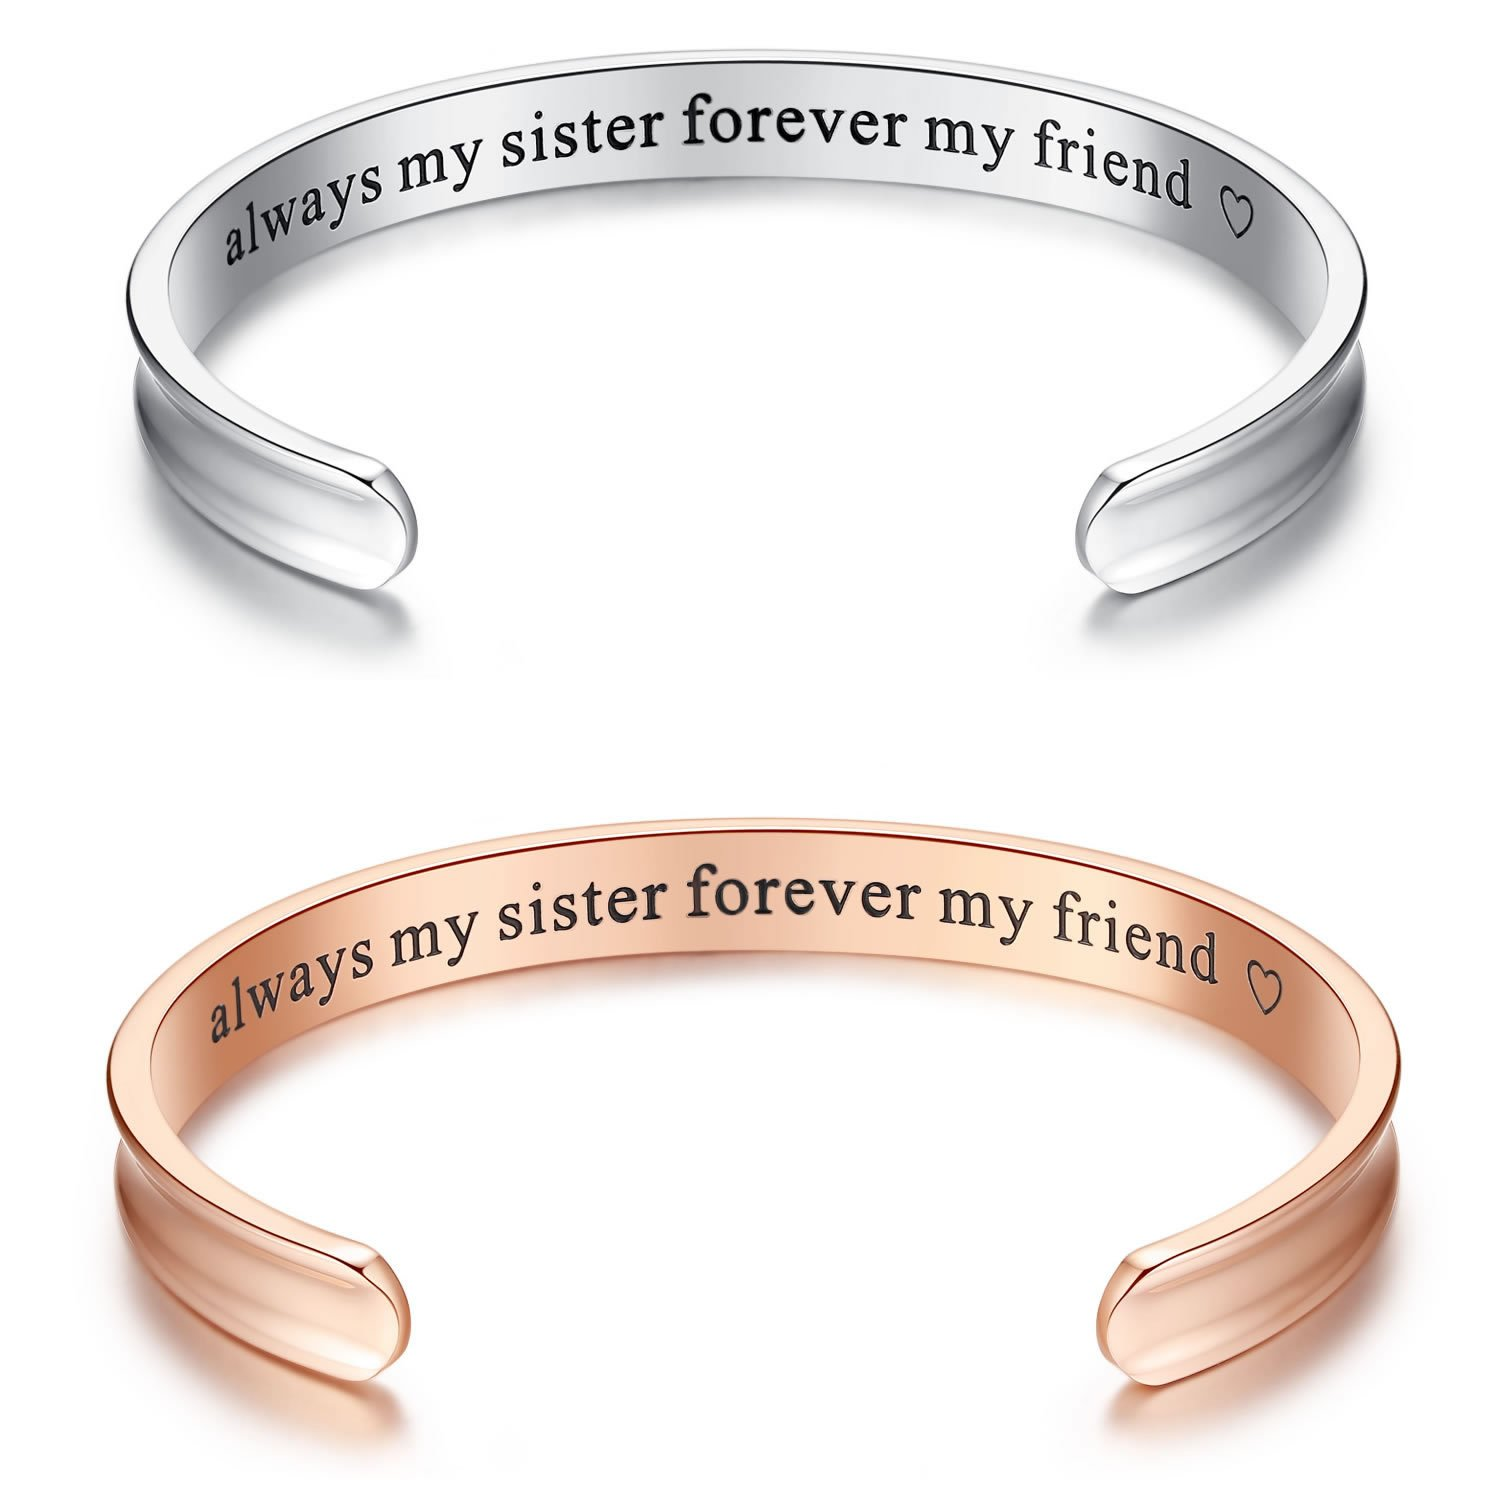 'Always my sister forever my friend' Grooved Cuff Bangle Bracelet, Jewelry Gifts for Sister, Friendship Sister Bracelet Gifts Jewelry Gifts for women Girls Birthday